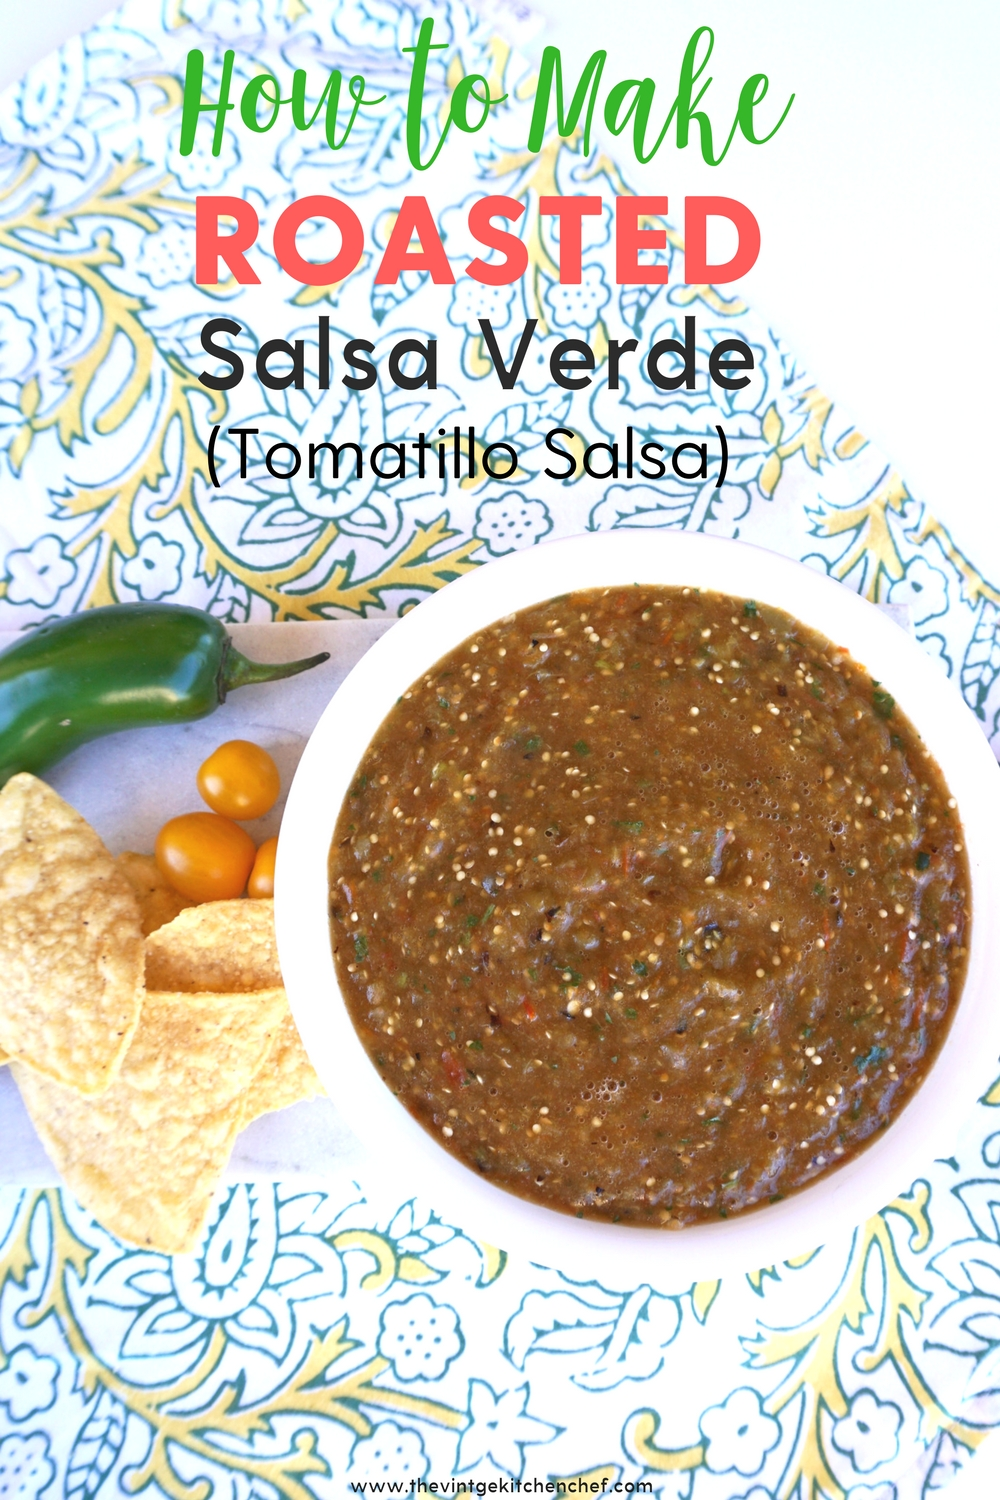 Roasted Salsa Verde is a treat for your tastebuds! It's a little chunky and tangy with just the right amount of spiciness. Enjoy it on tacos or with chips!